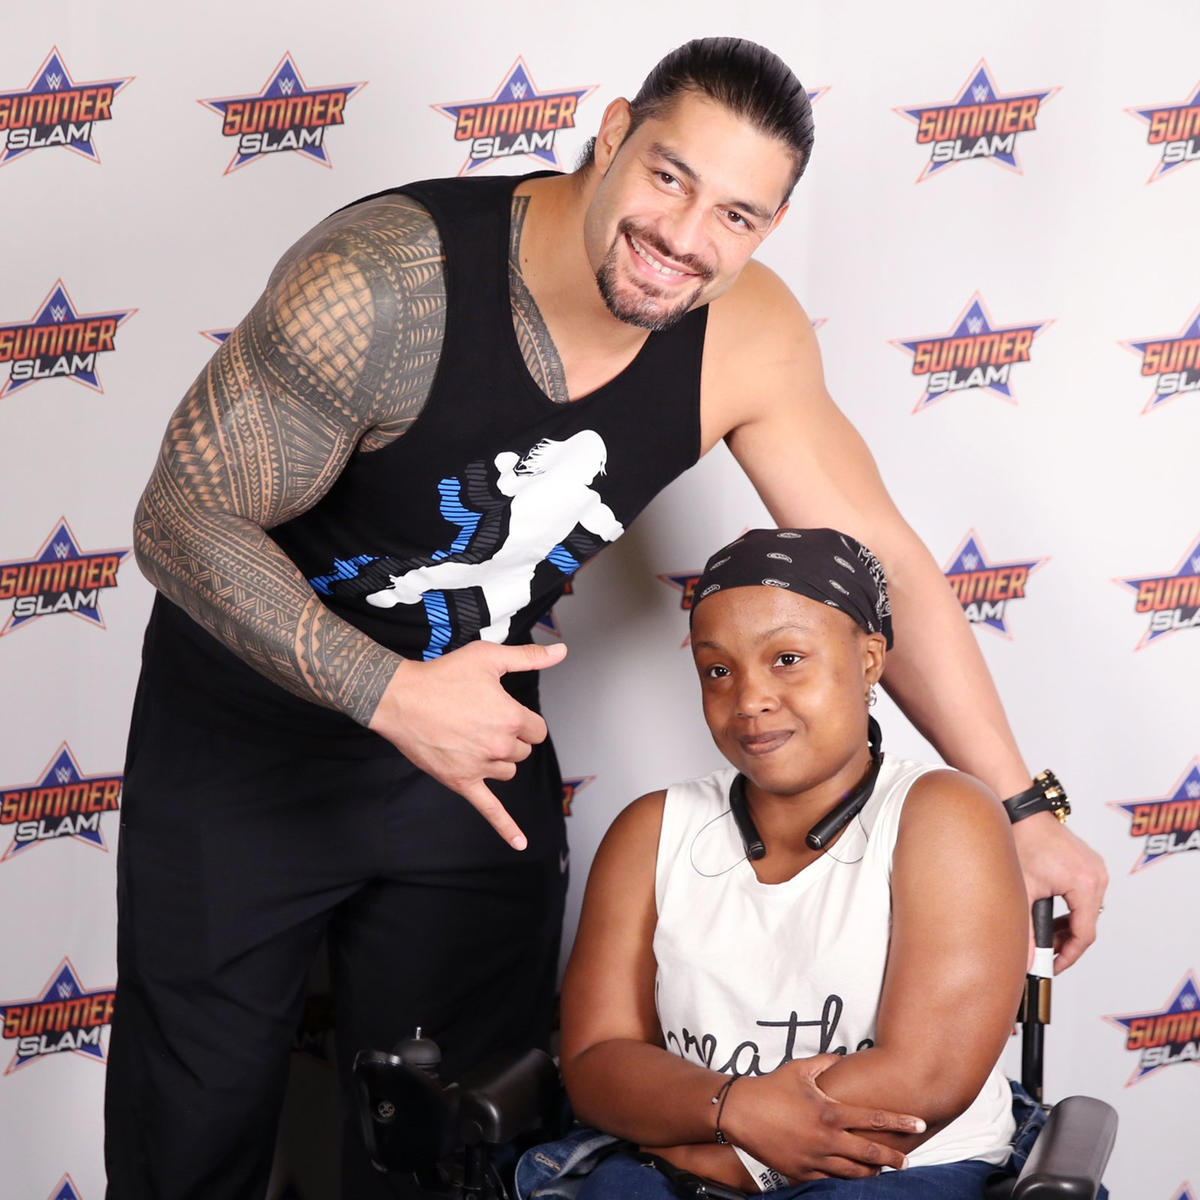 Roman reigns and the new day meet the wwe universe in a summerslam wwe photo kristyandbryce Image collections